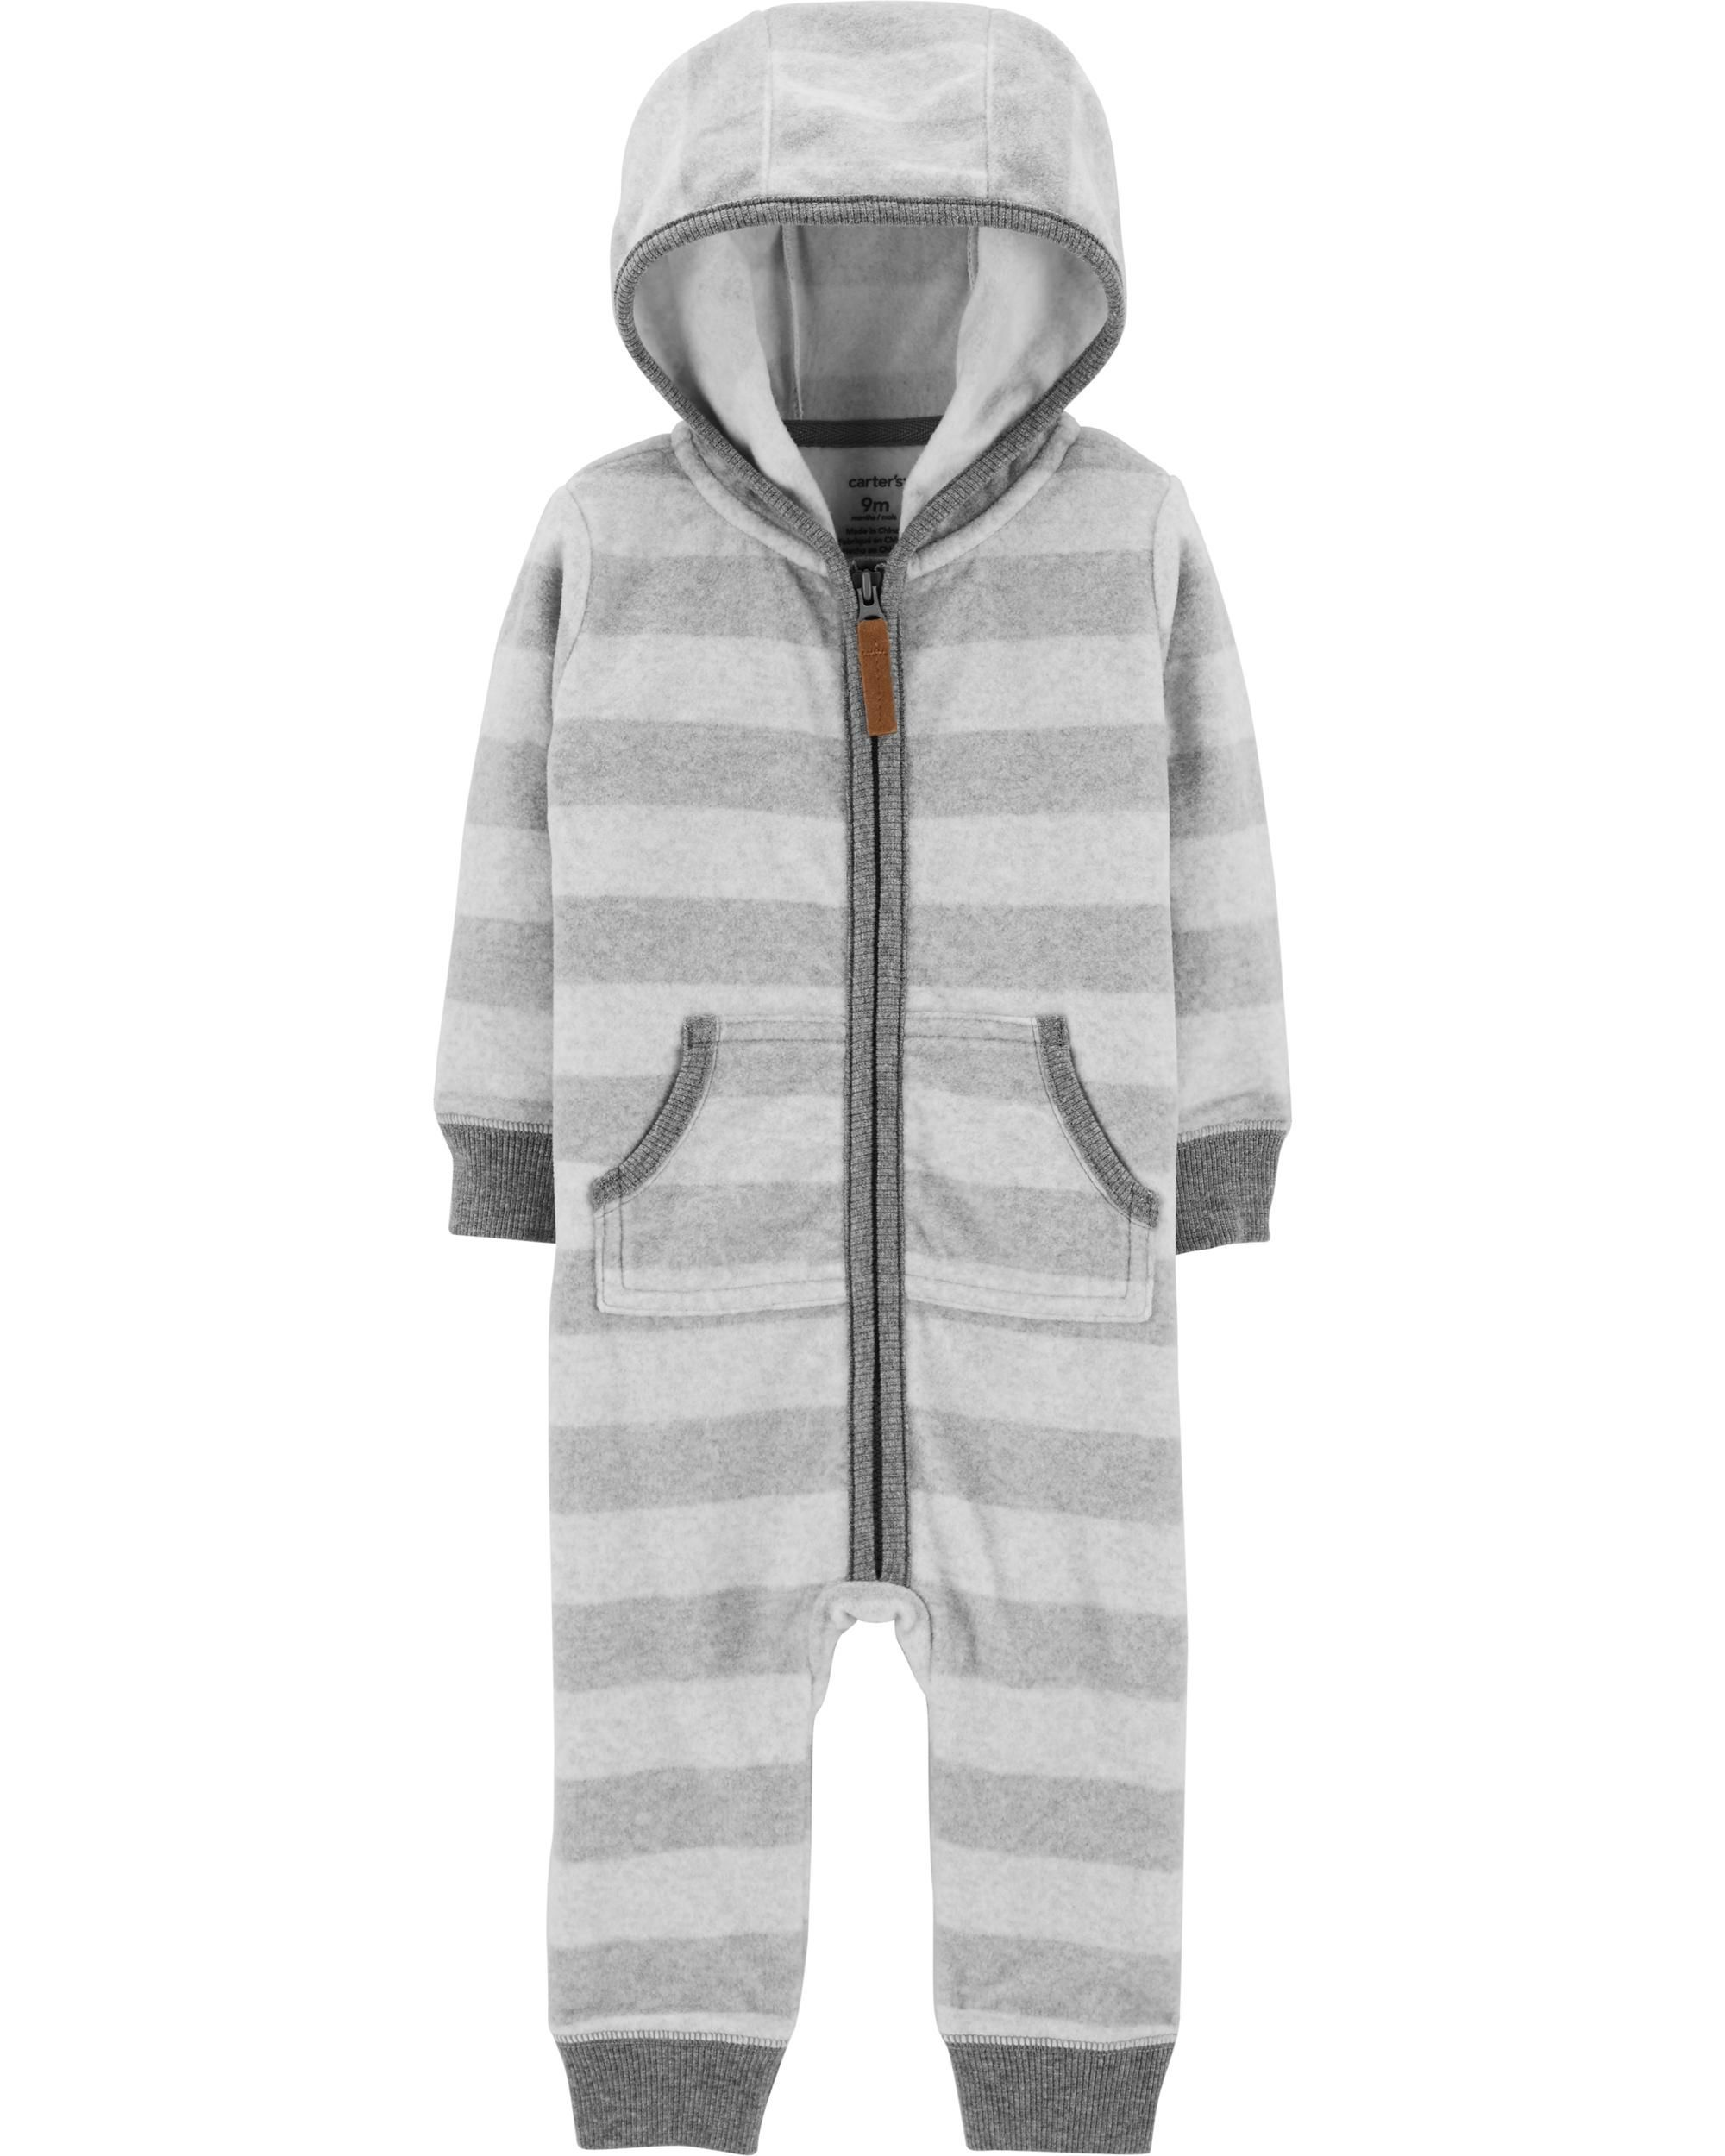 f38ab2056 Toddler Clothes Near Me. Baby Boy Striped Hooded Fleece Jumpsuit | Carters .com